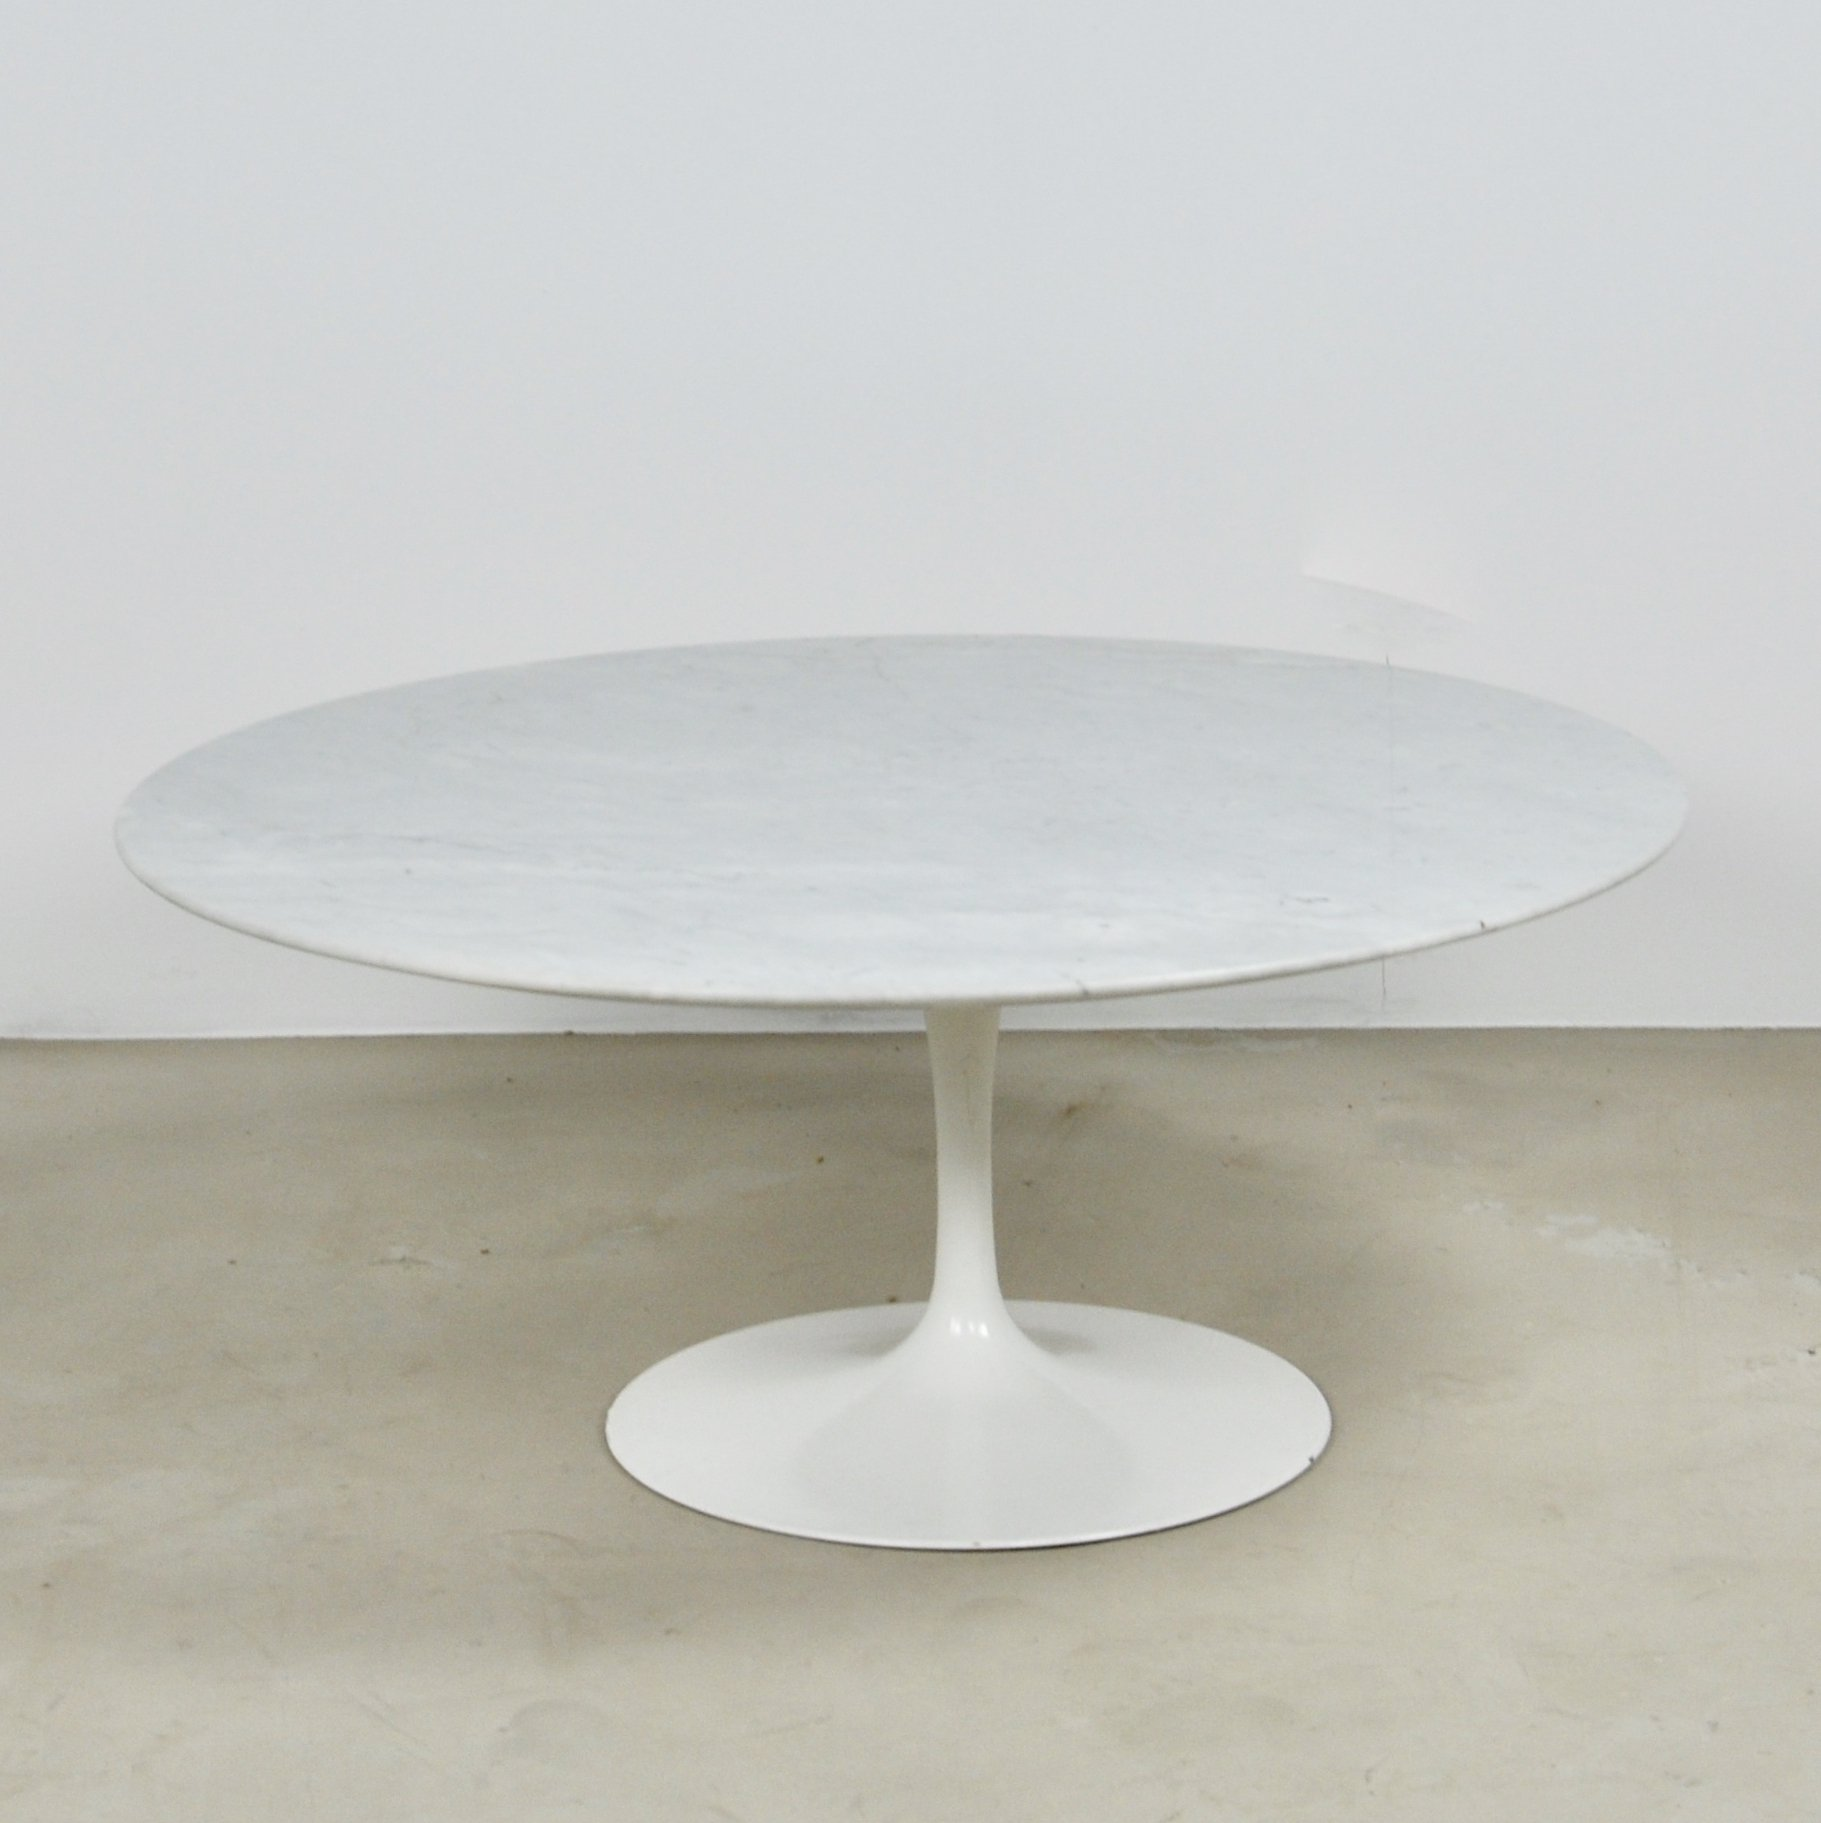 - Tulip Coffee Table By Eero Saarinen For Knoll International, 1956